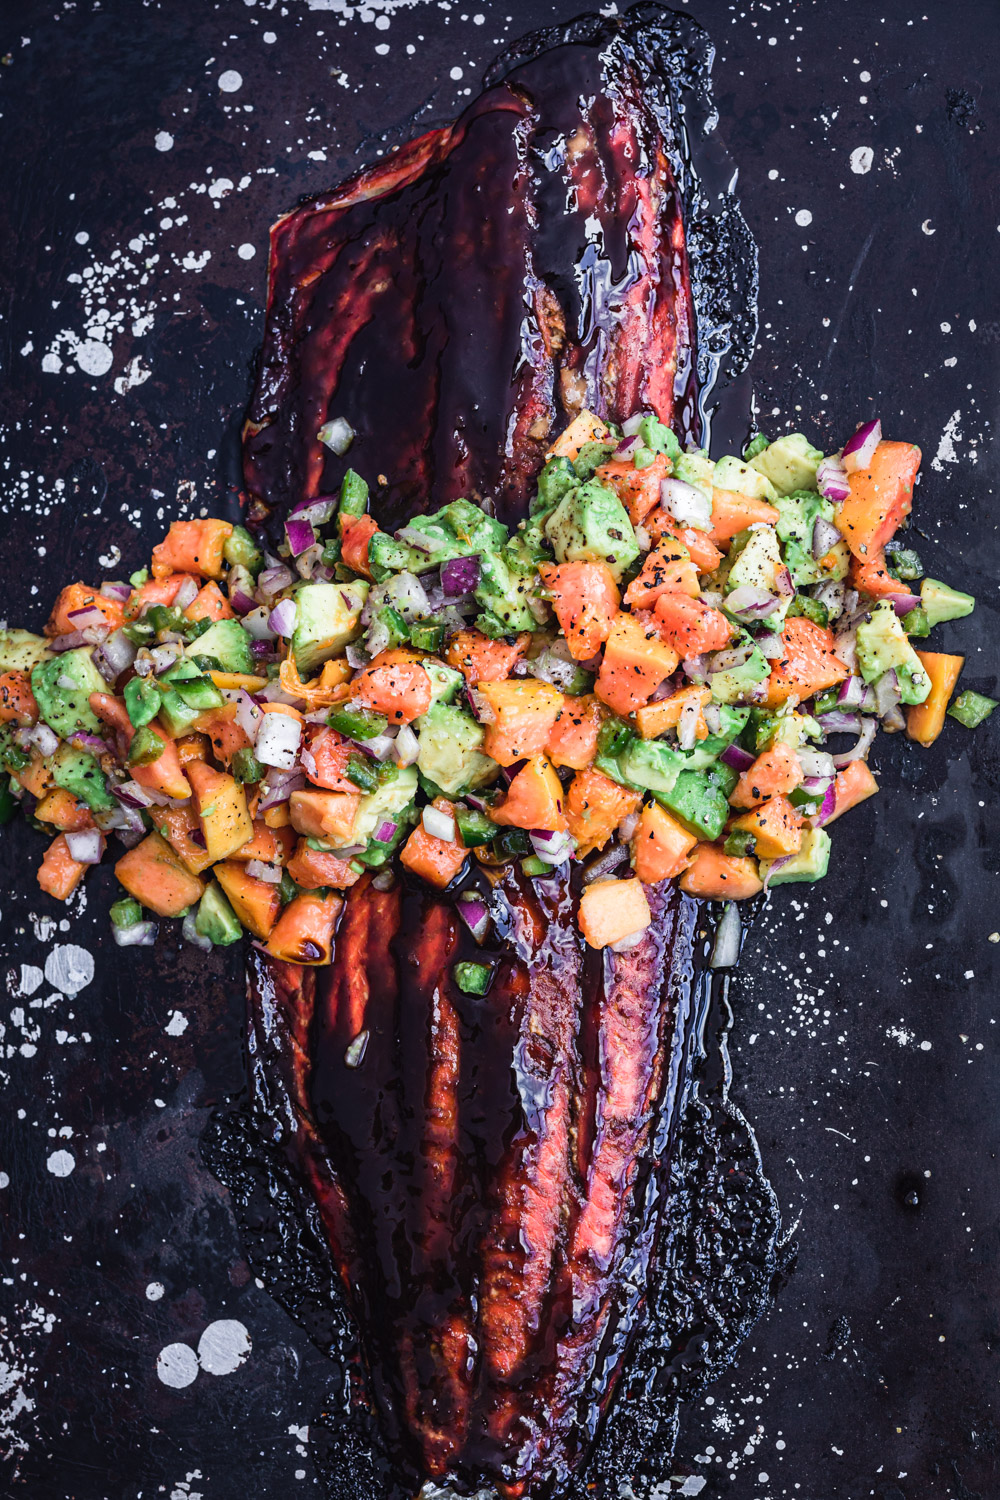 Salsa negra salmon with a papaya avocado salsa.